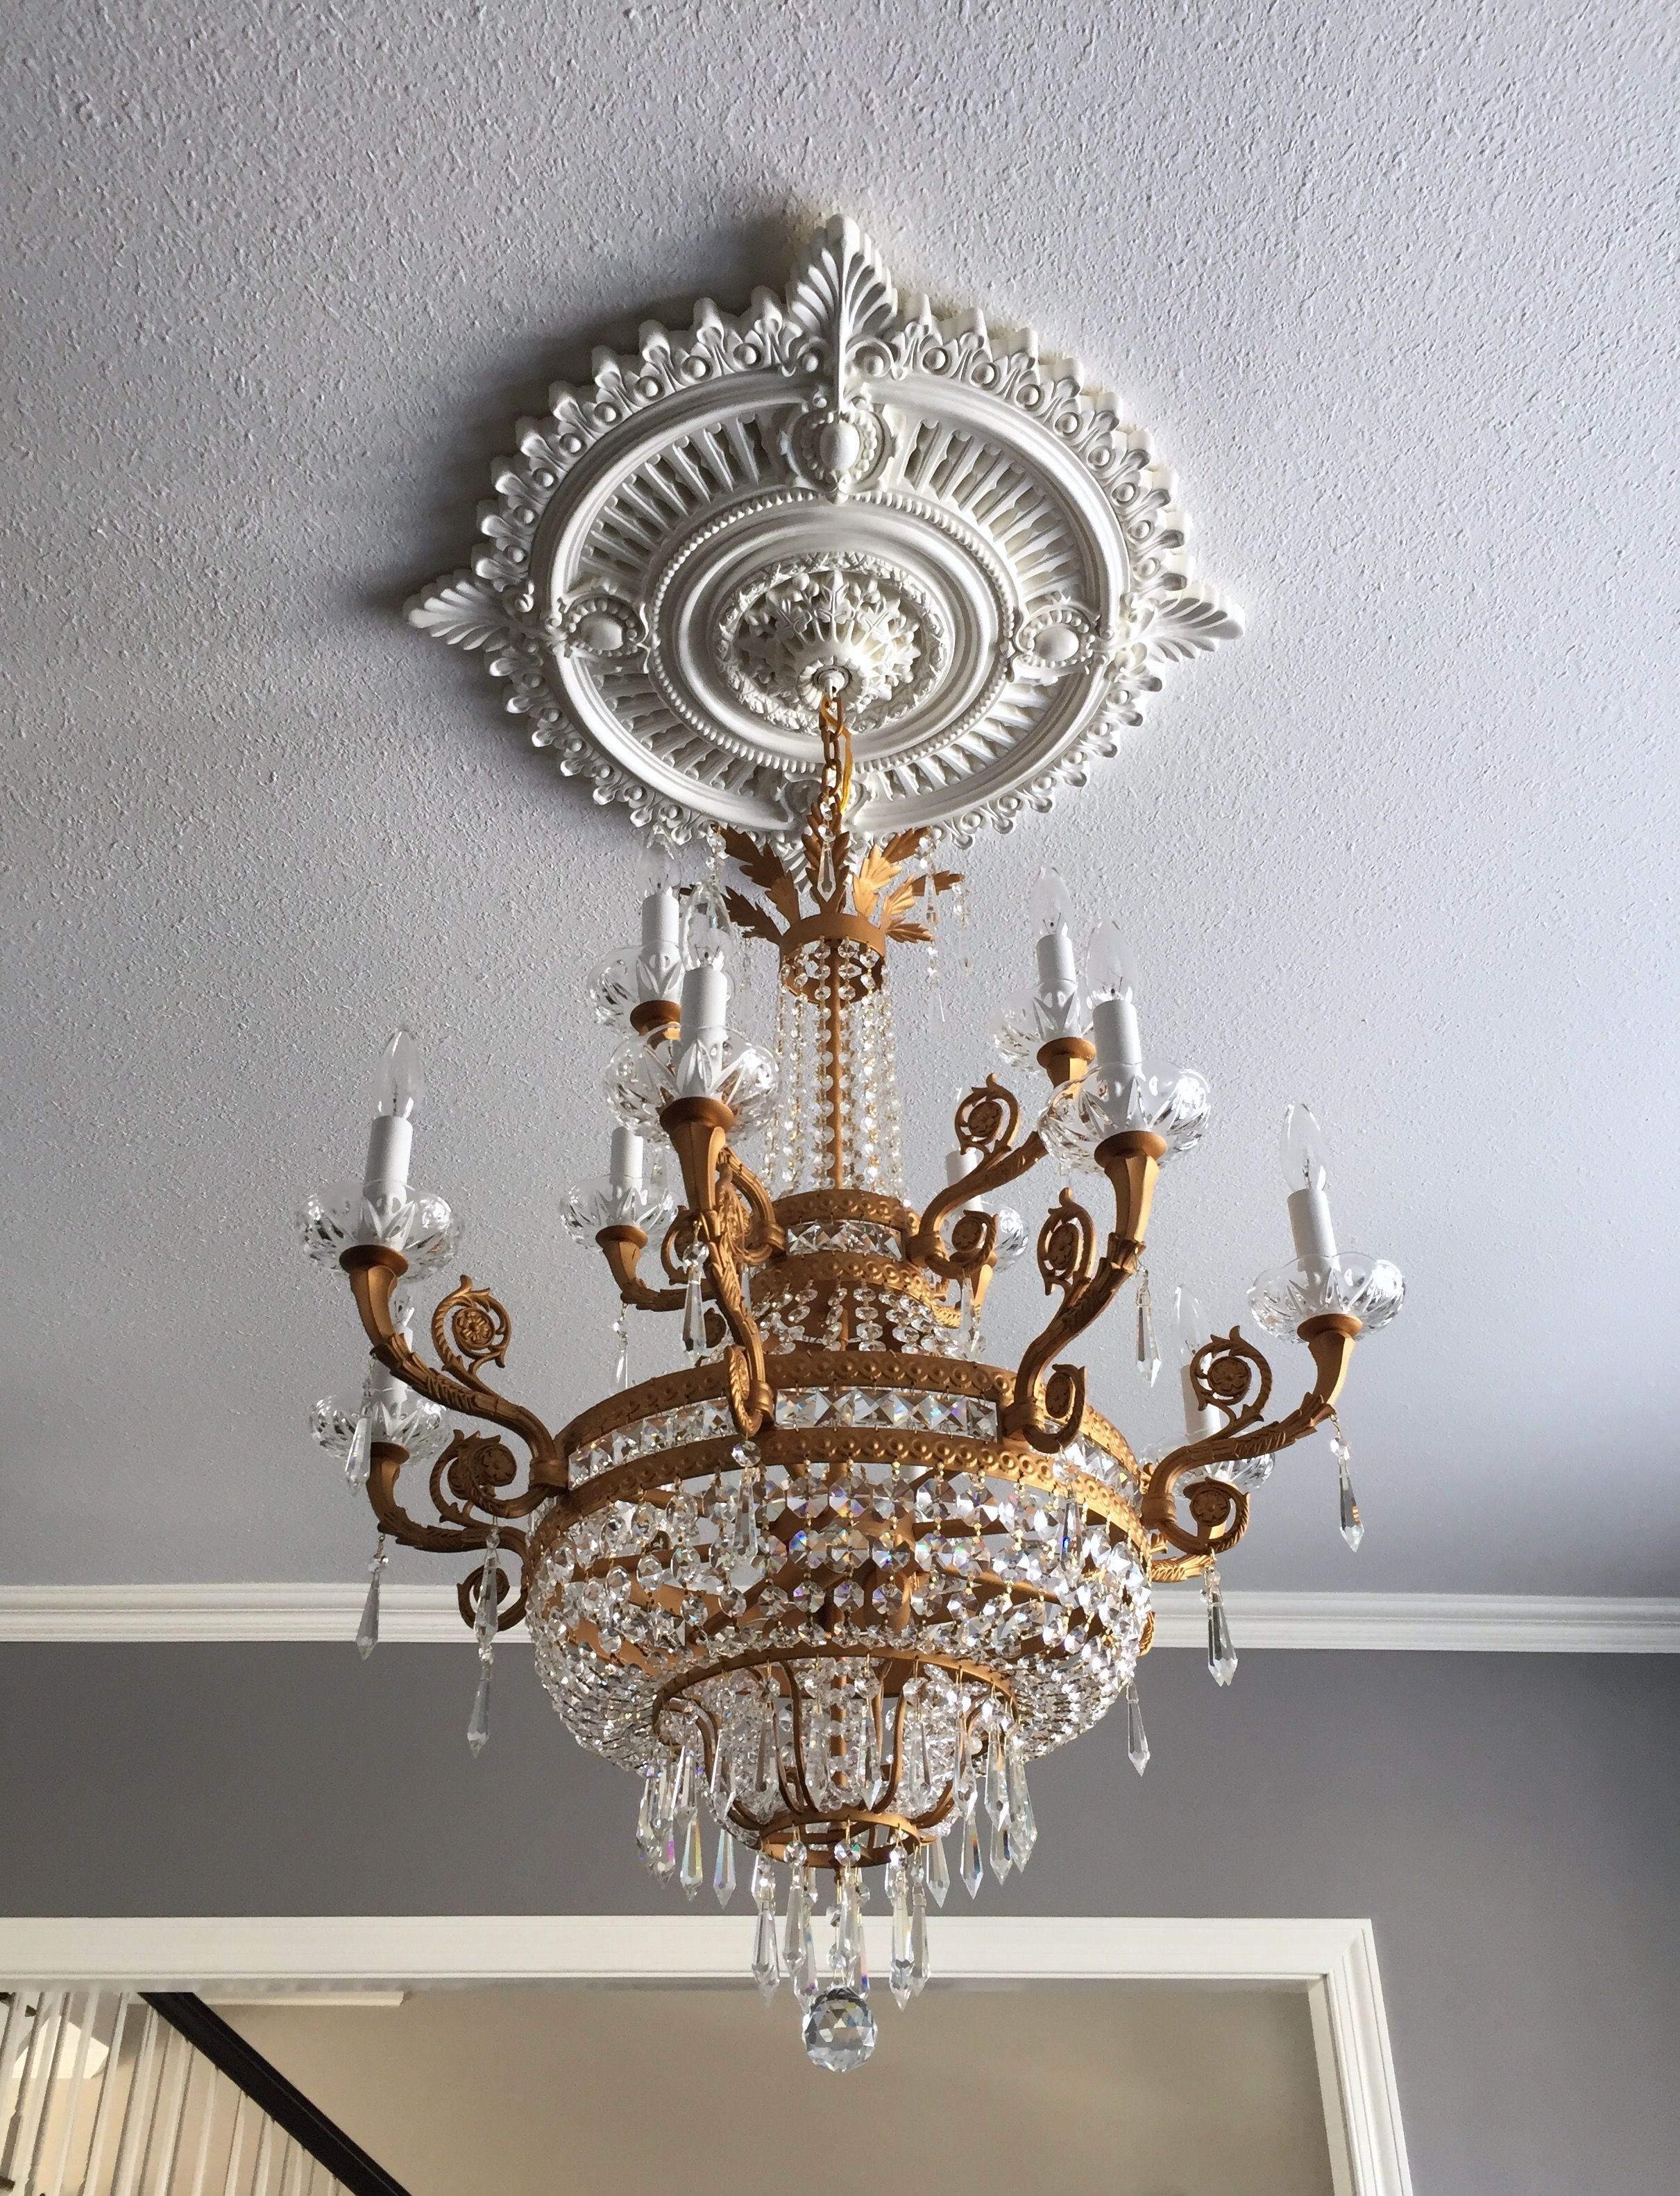 Brassy bronze crystal empire chandelier and ceiling medallion in a